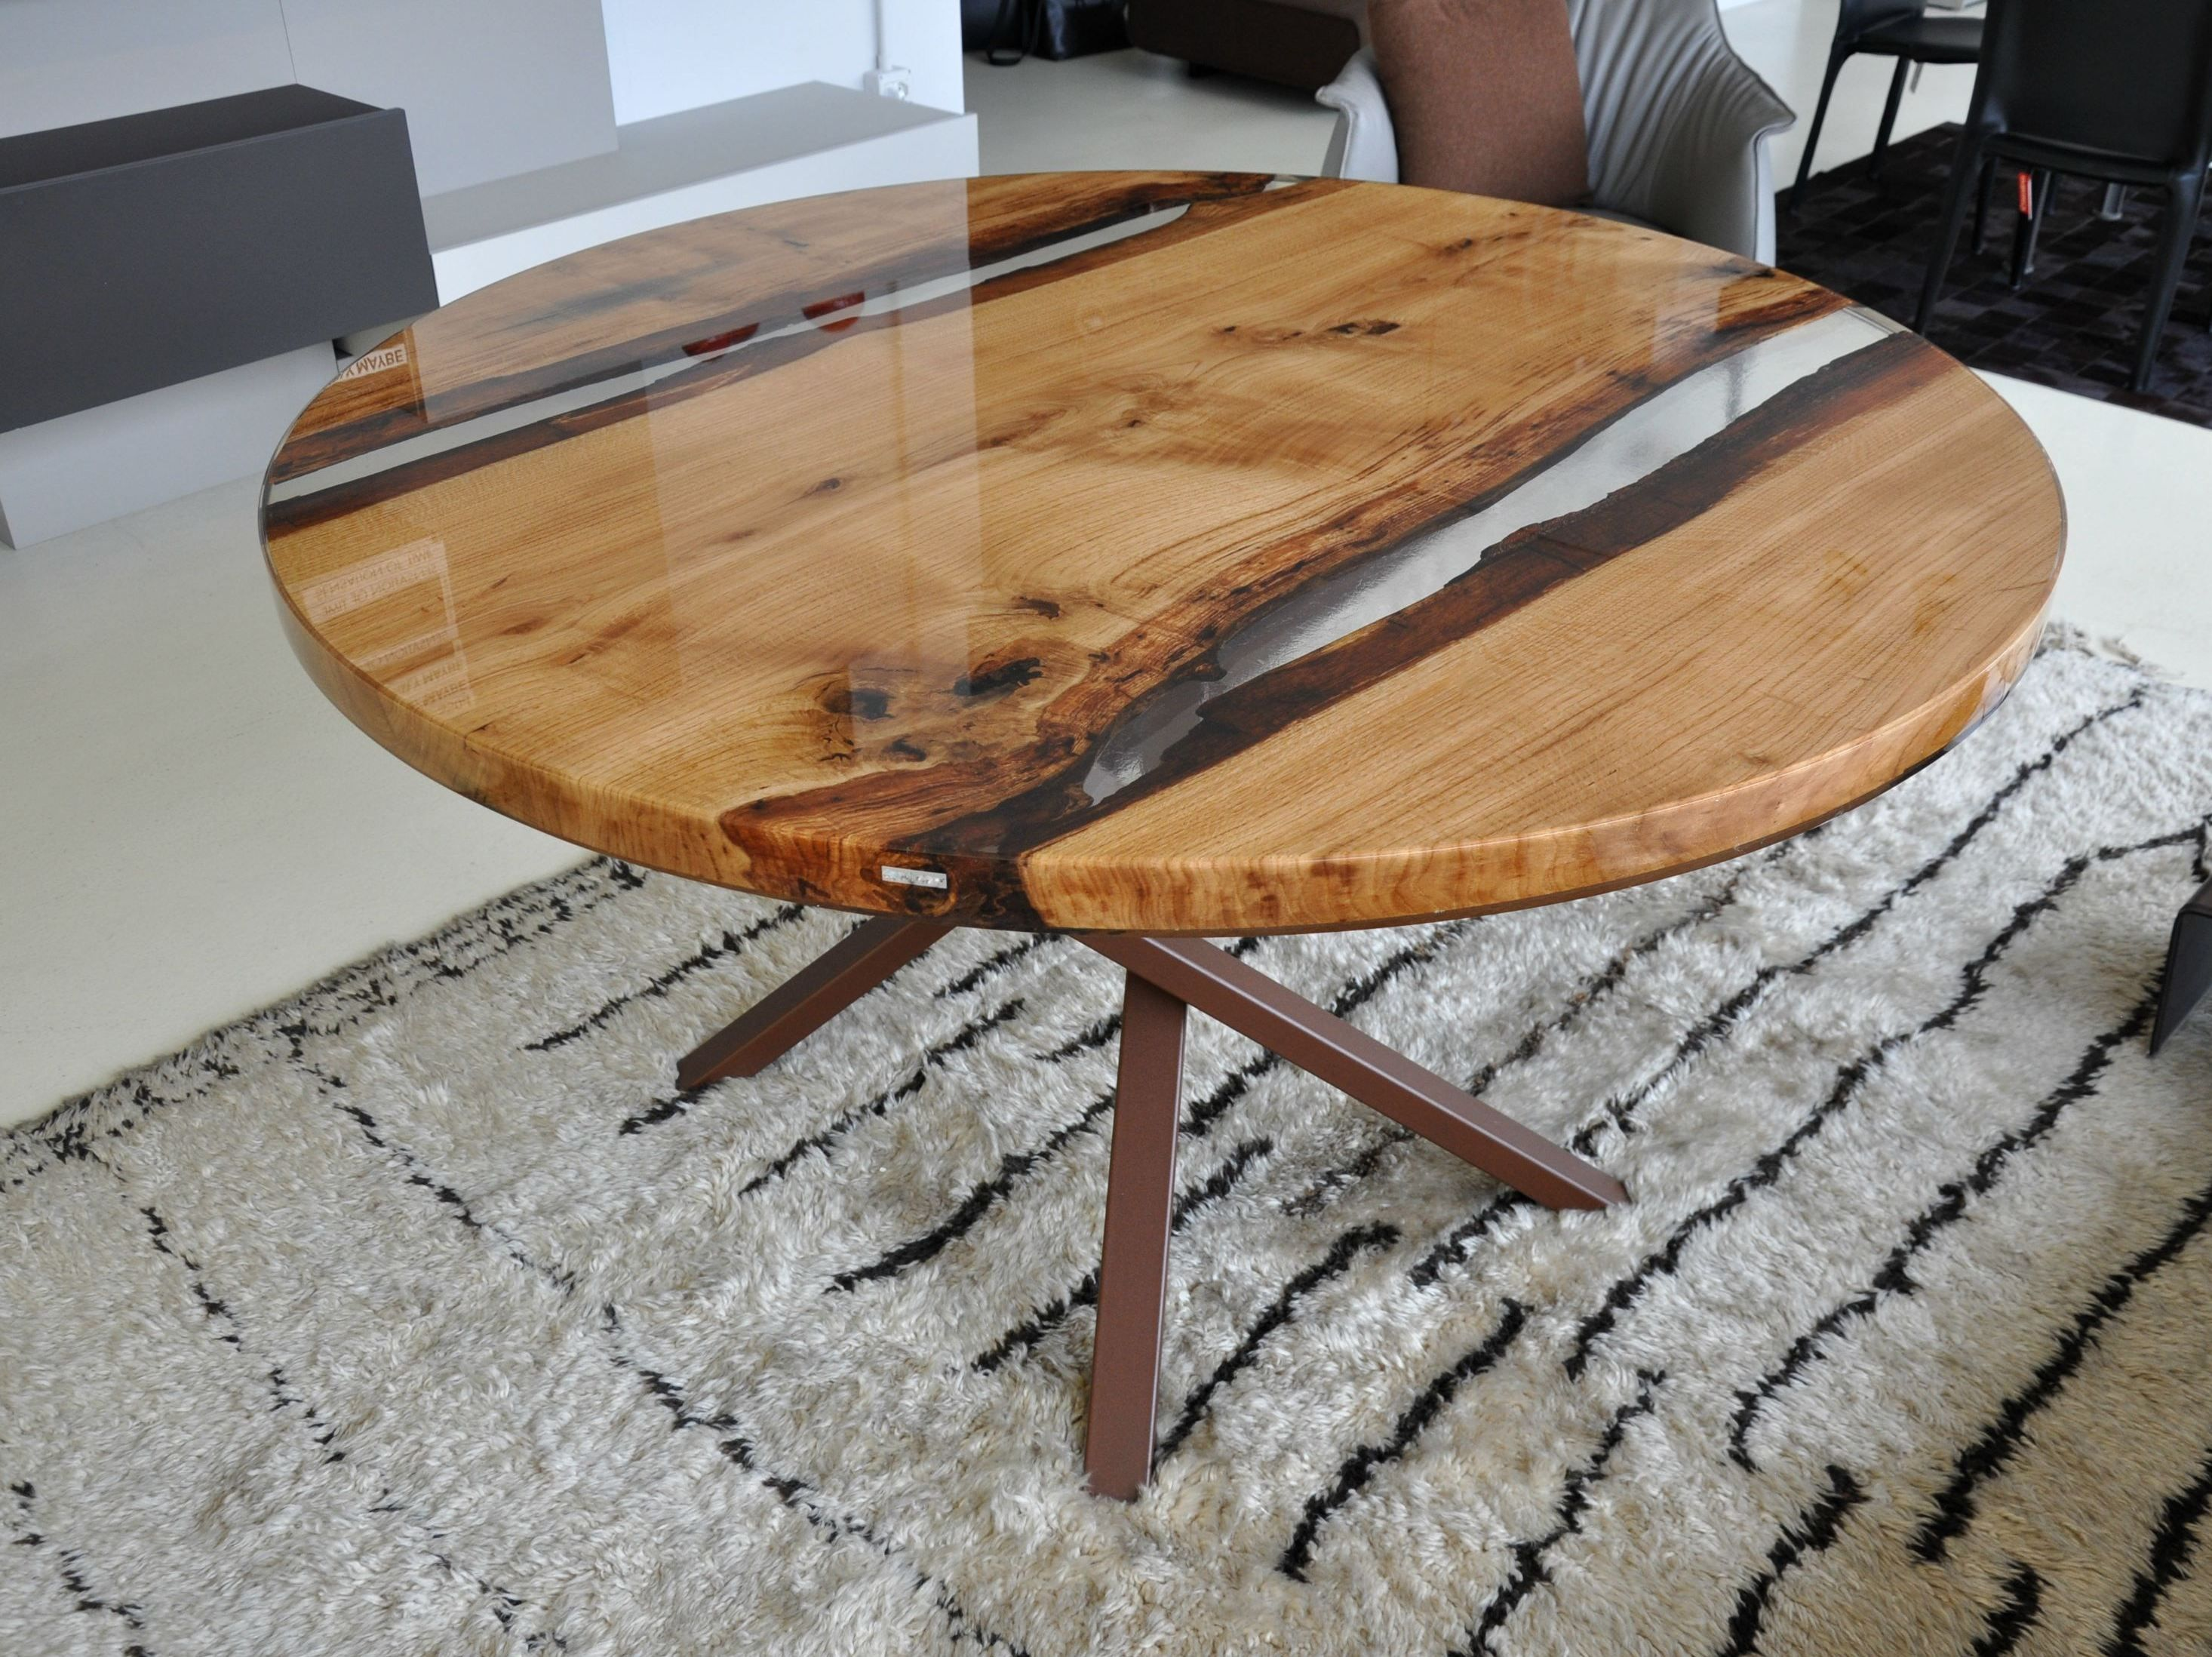 Venere Tavolo In Resina E Briccola Round Table By Antico Trentino Di Lucio Seppi Resin Table Resin Furniture Wood Resin Table